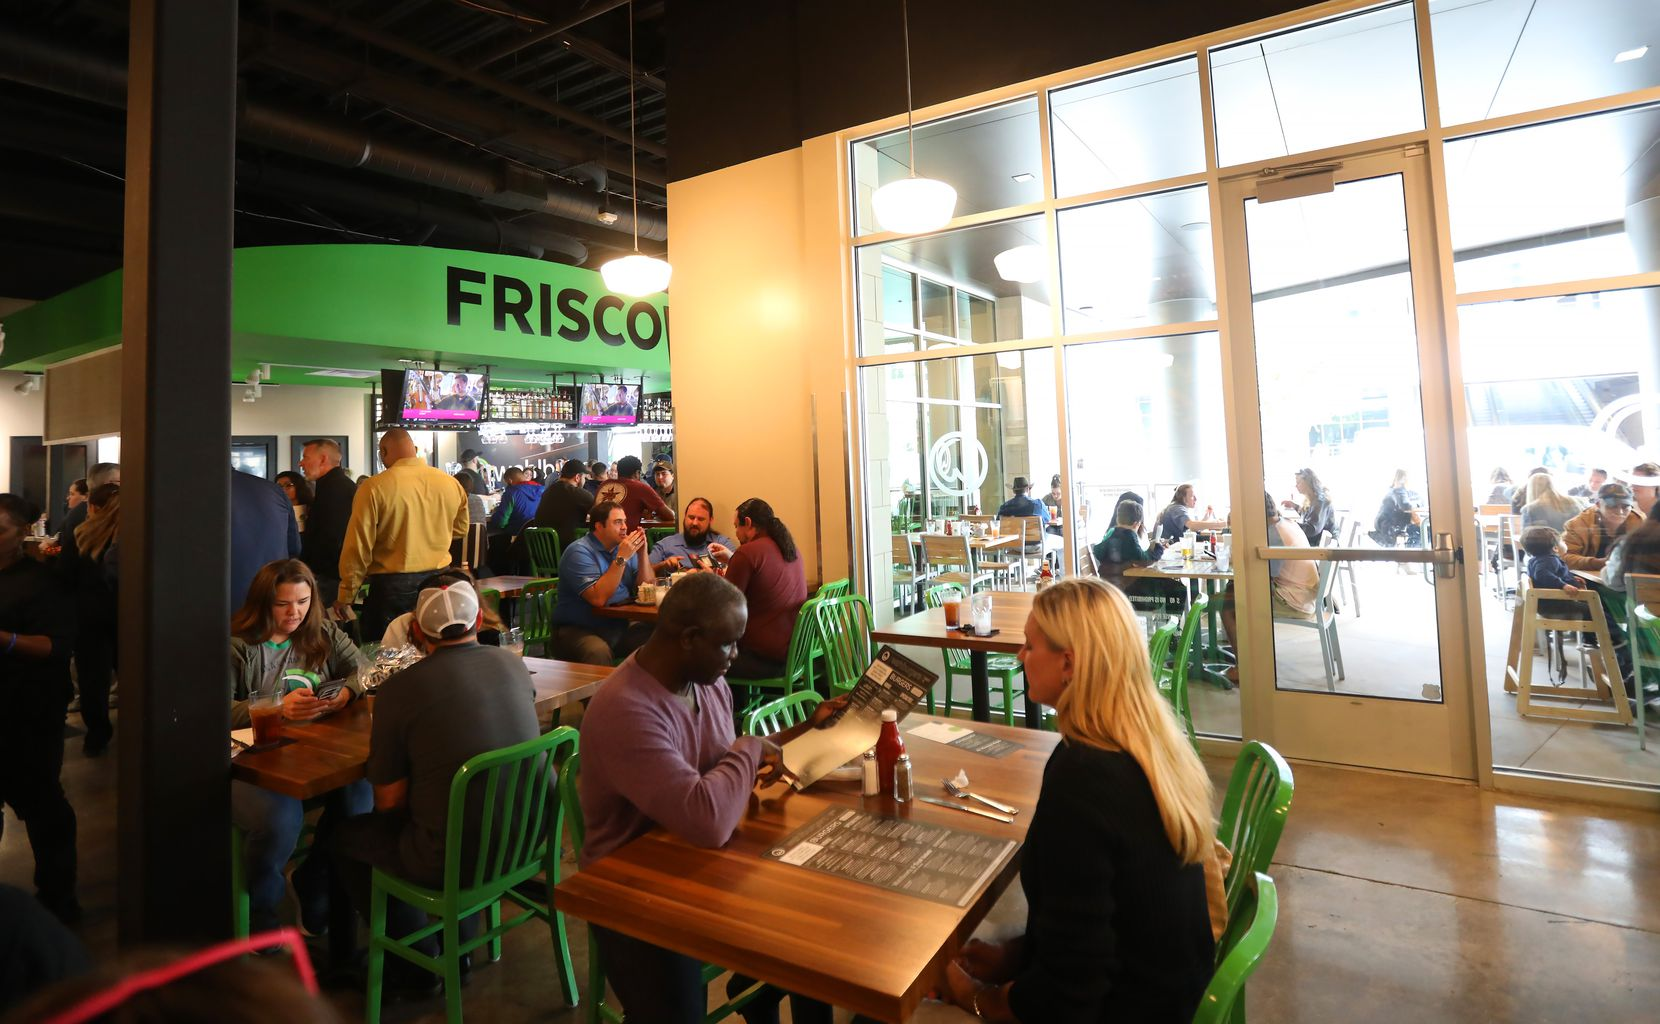 Though Wahlburgers is a casual restaurant, it's not fast-casual. Customers are seated by a host and waited upon by a server. Customers can sit at the bar, on the patio or in the main dining room.